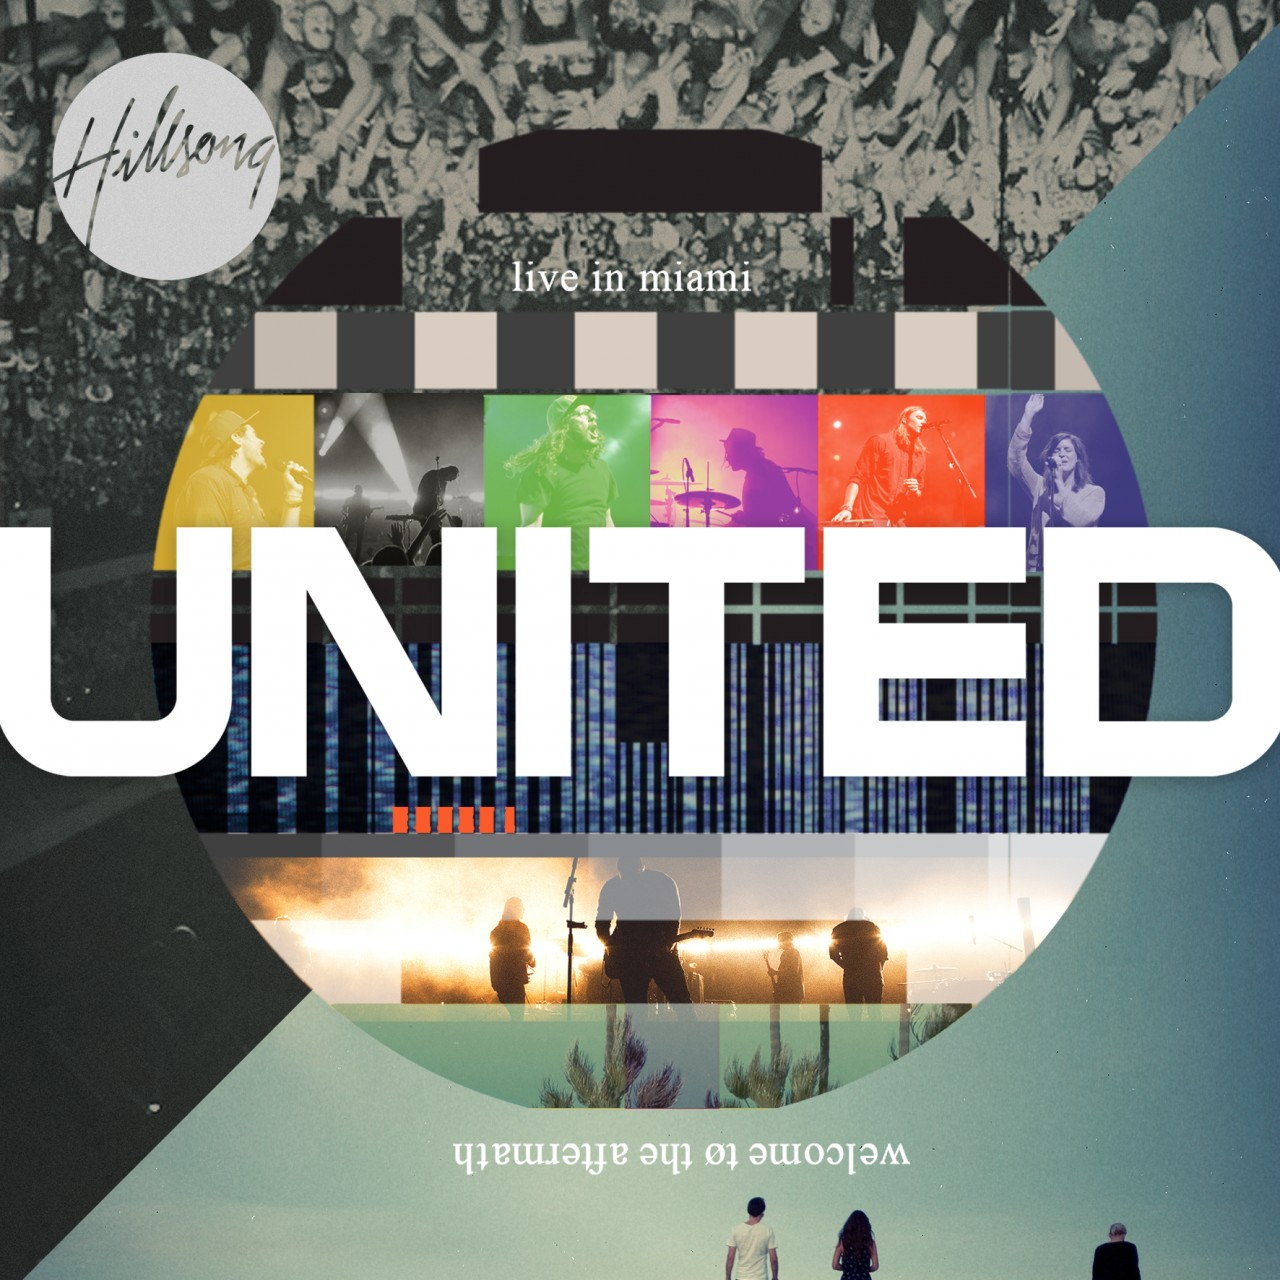 Hillsong - Live In Miami 2012